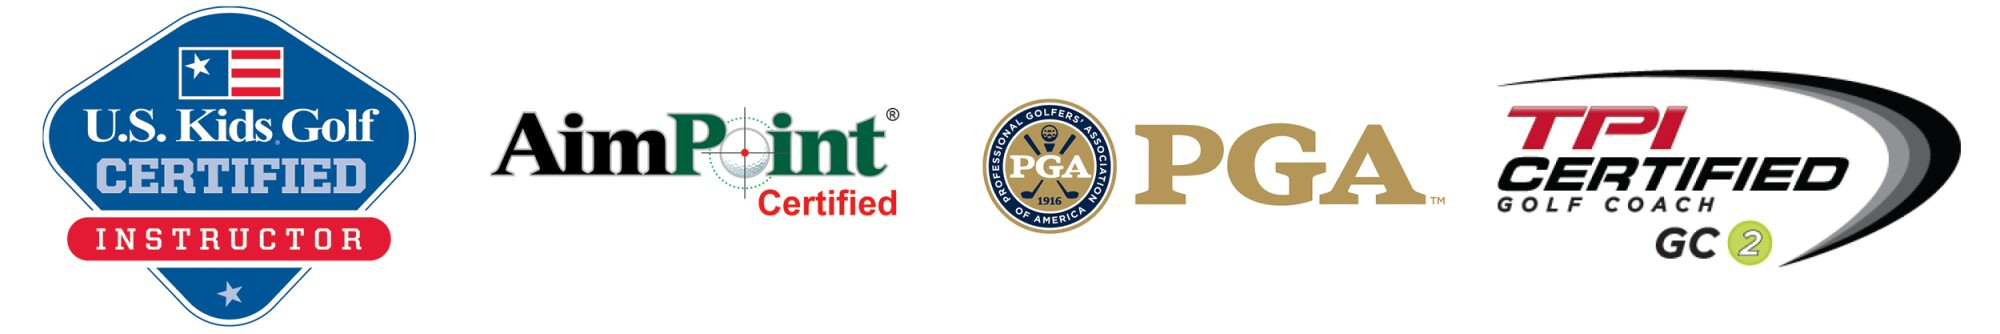 U.S. Kids Golf Certified Instructor, AimPoint Certified, PGA, TPI Certified Golf Coach GC 2